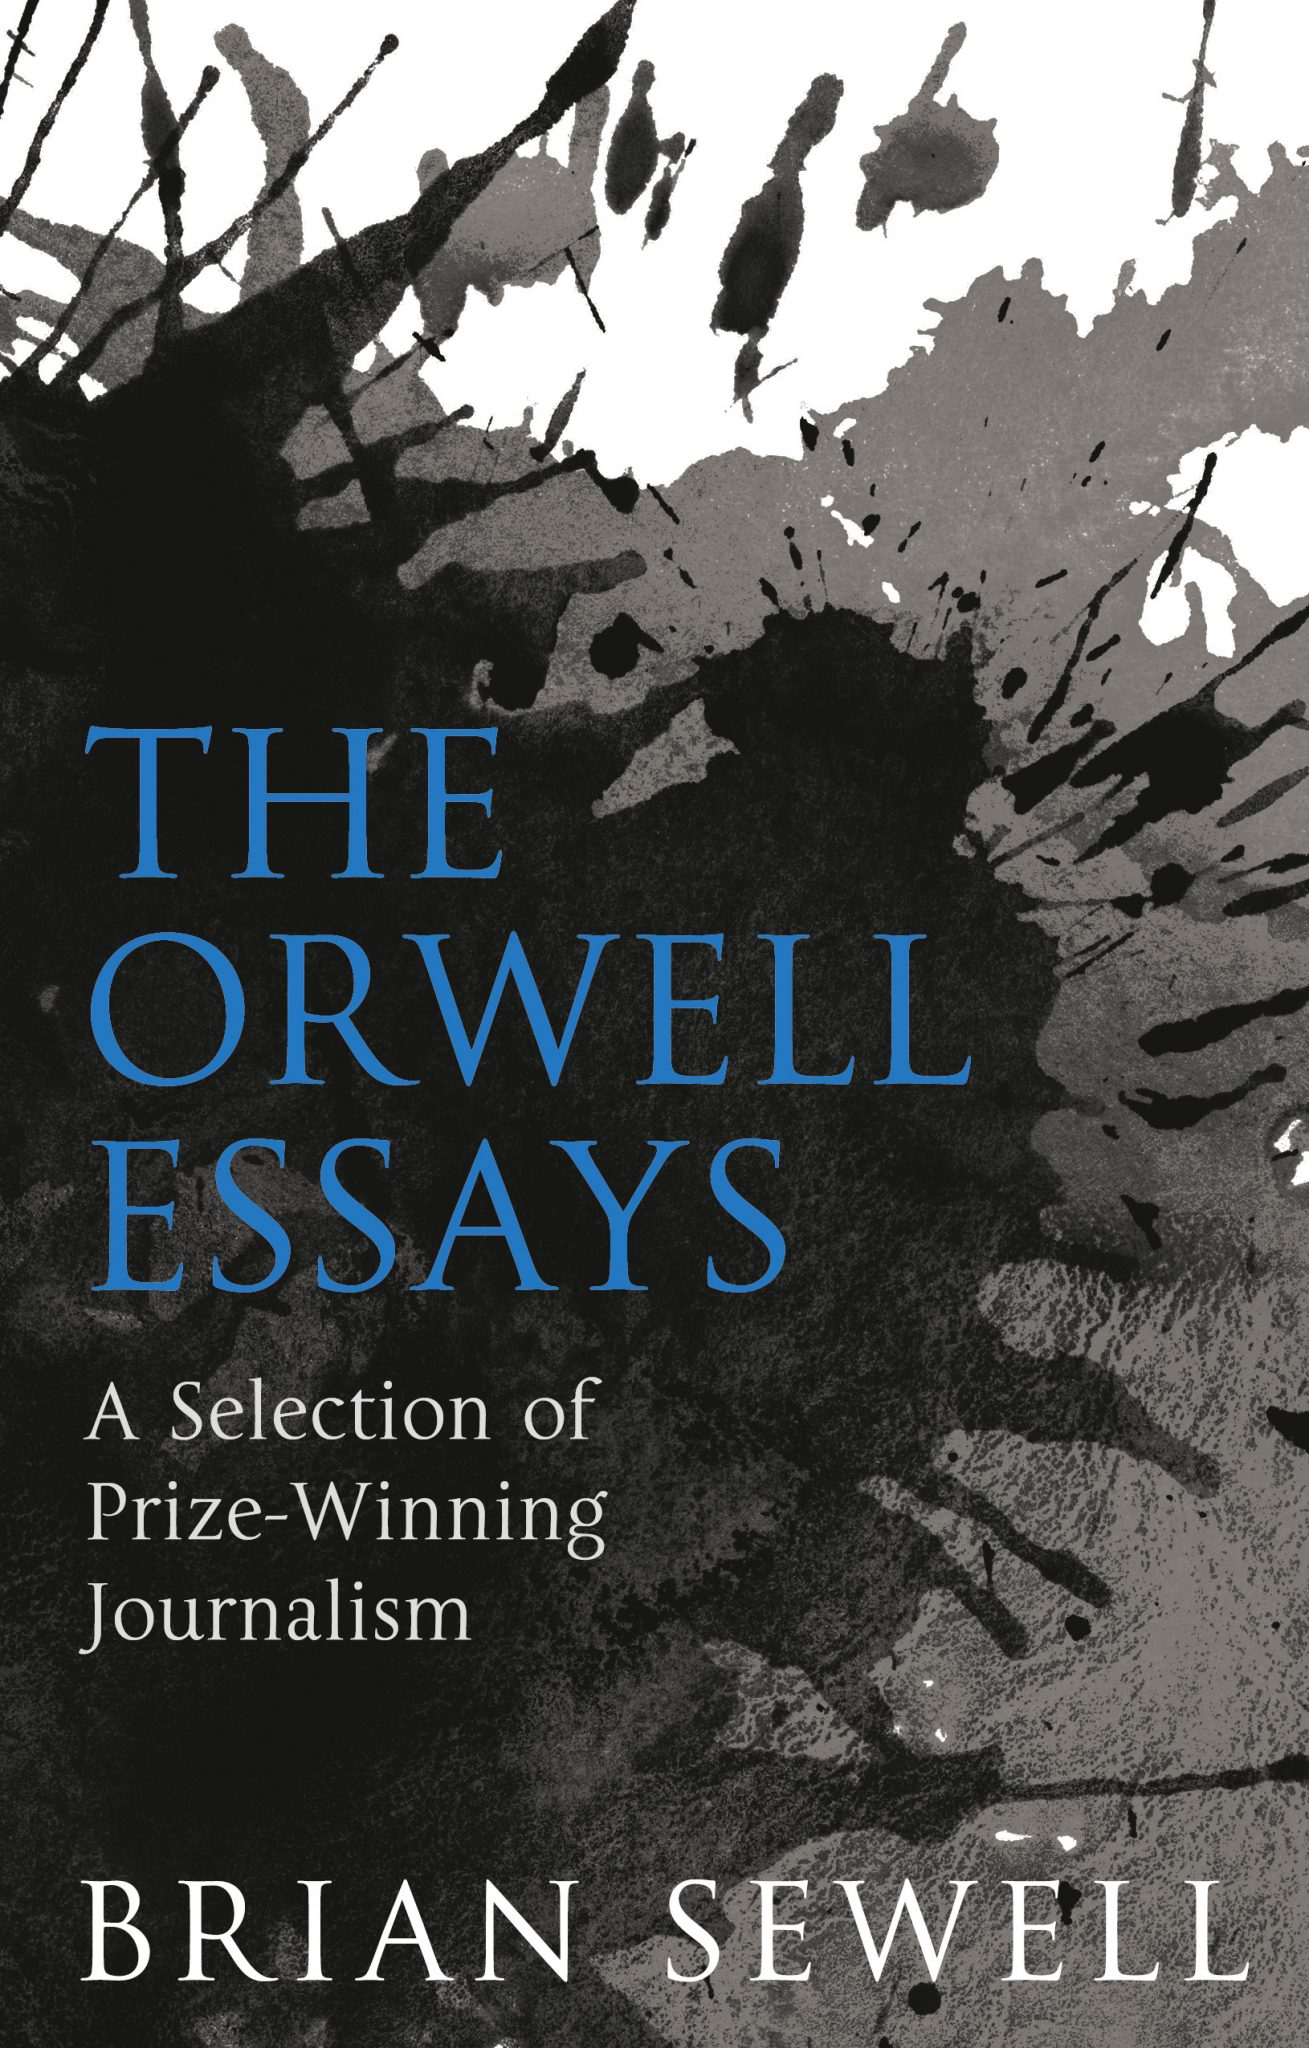 008 Orwell Essays Essay Singular Amazon Pdf Epub Full